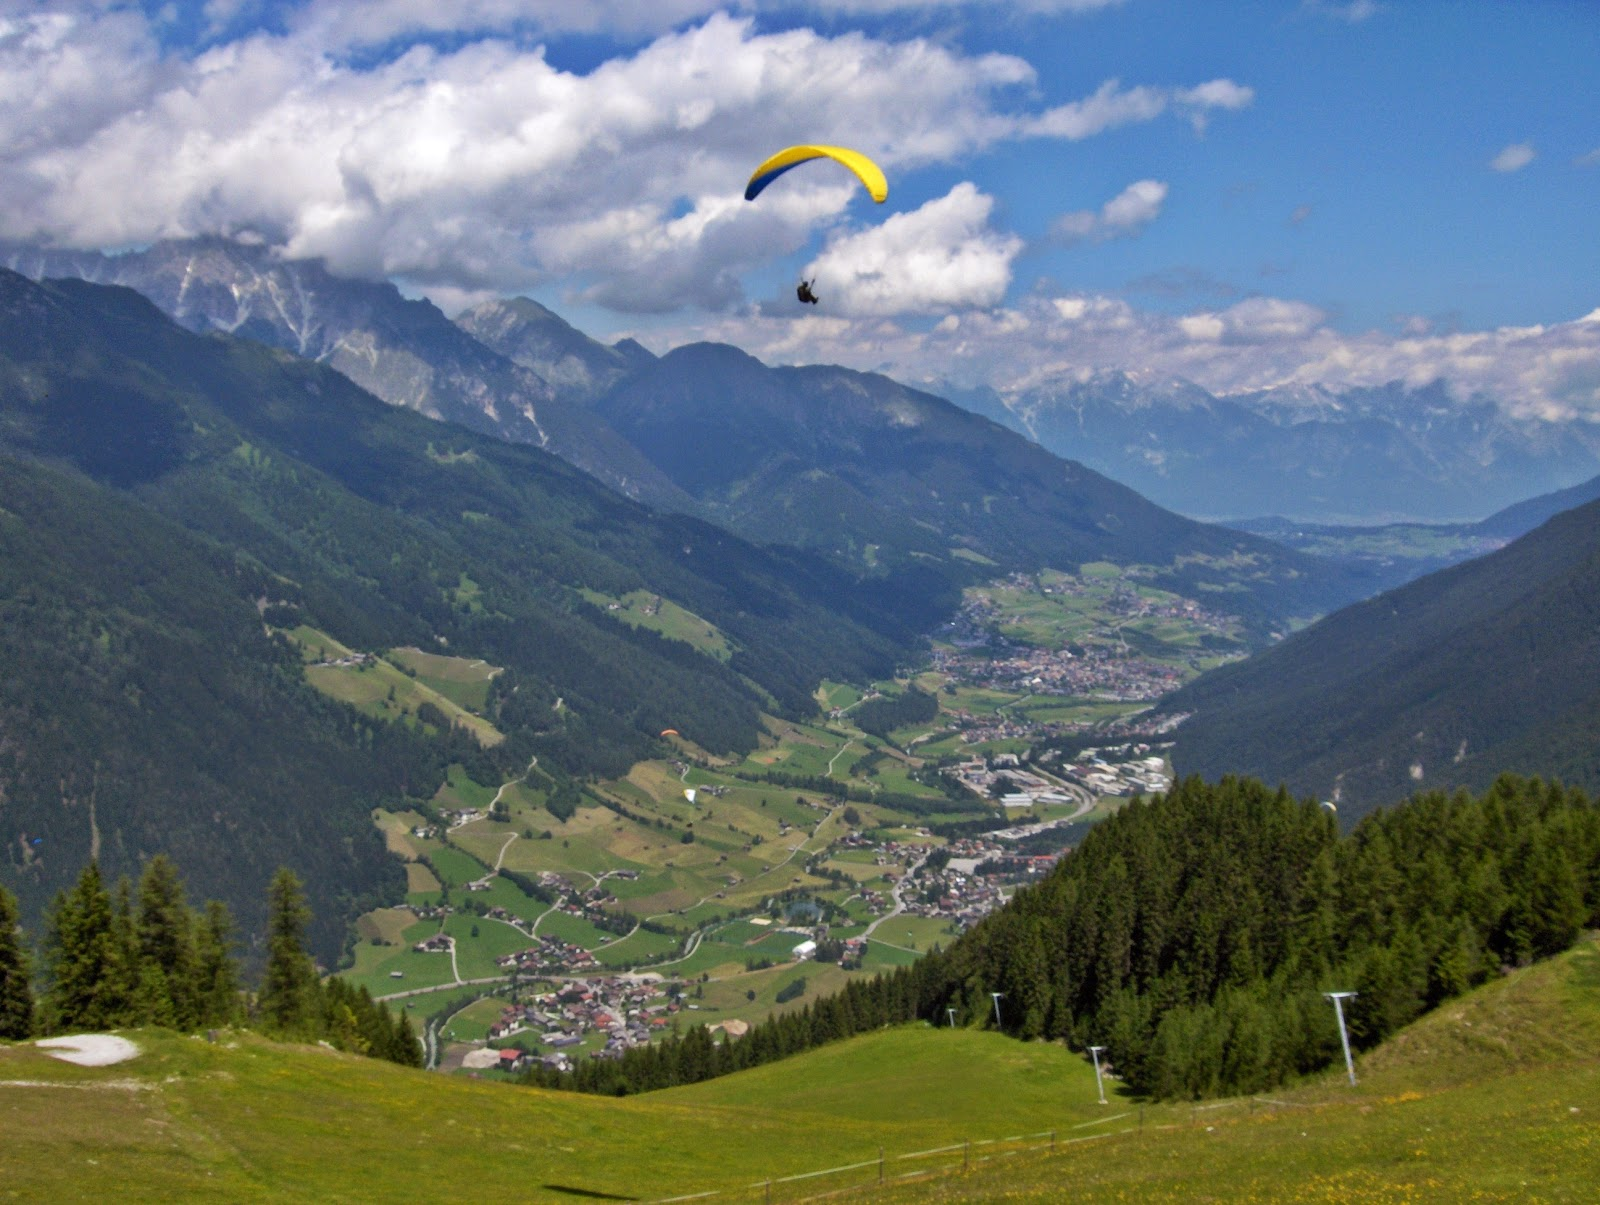 Flying high in Austrian Alps